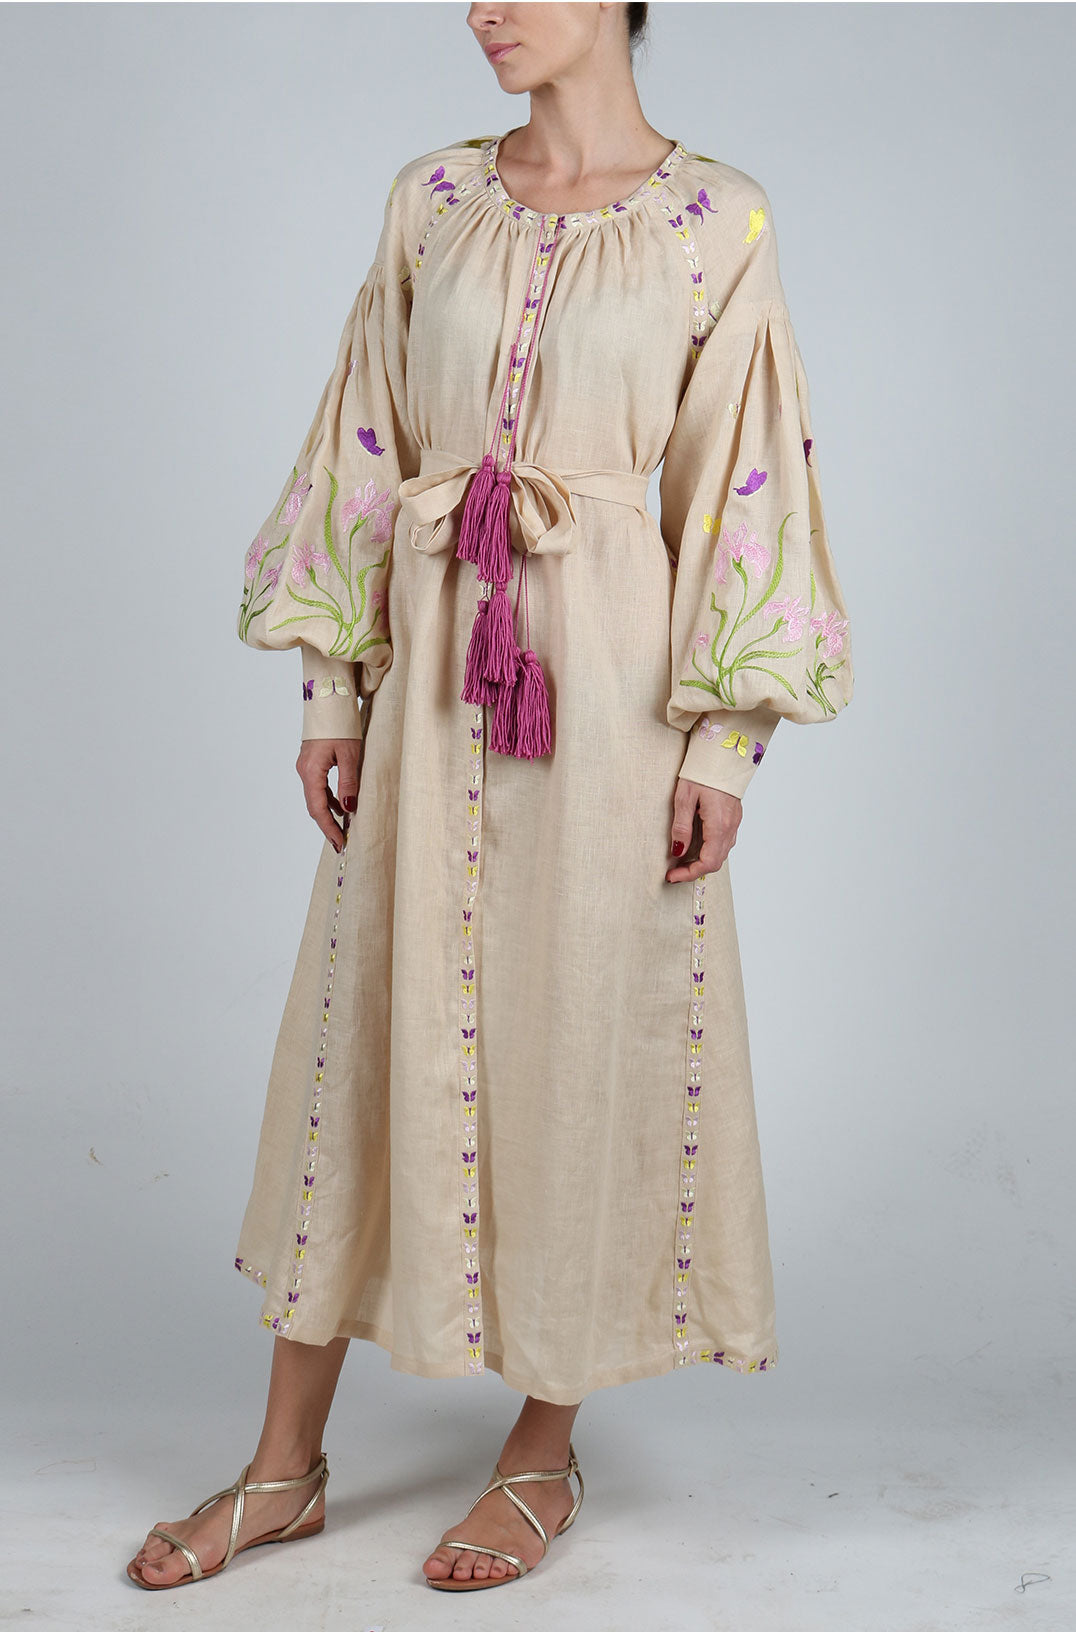 Fanm Mon Blush Linen Multi Color Floral Butterfly Embroidery Vyshyvanka MIDI Dress size XS-XXL MD0124